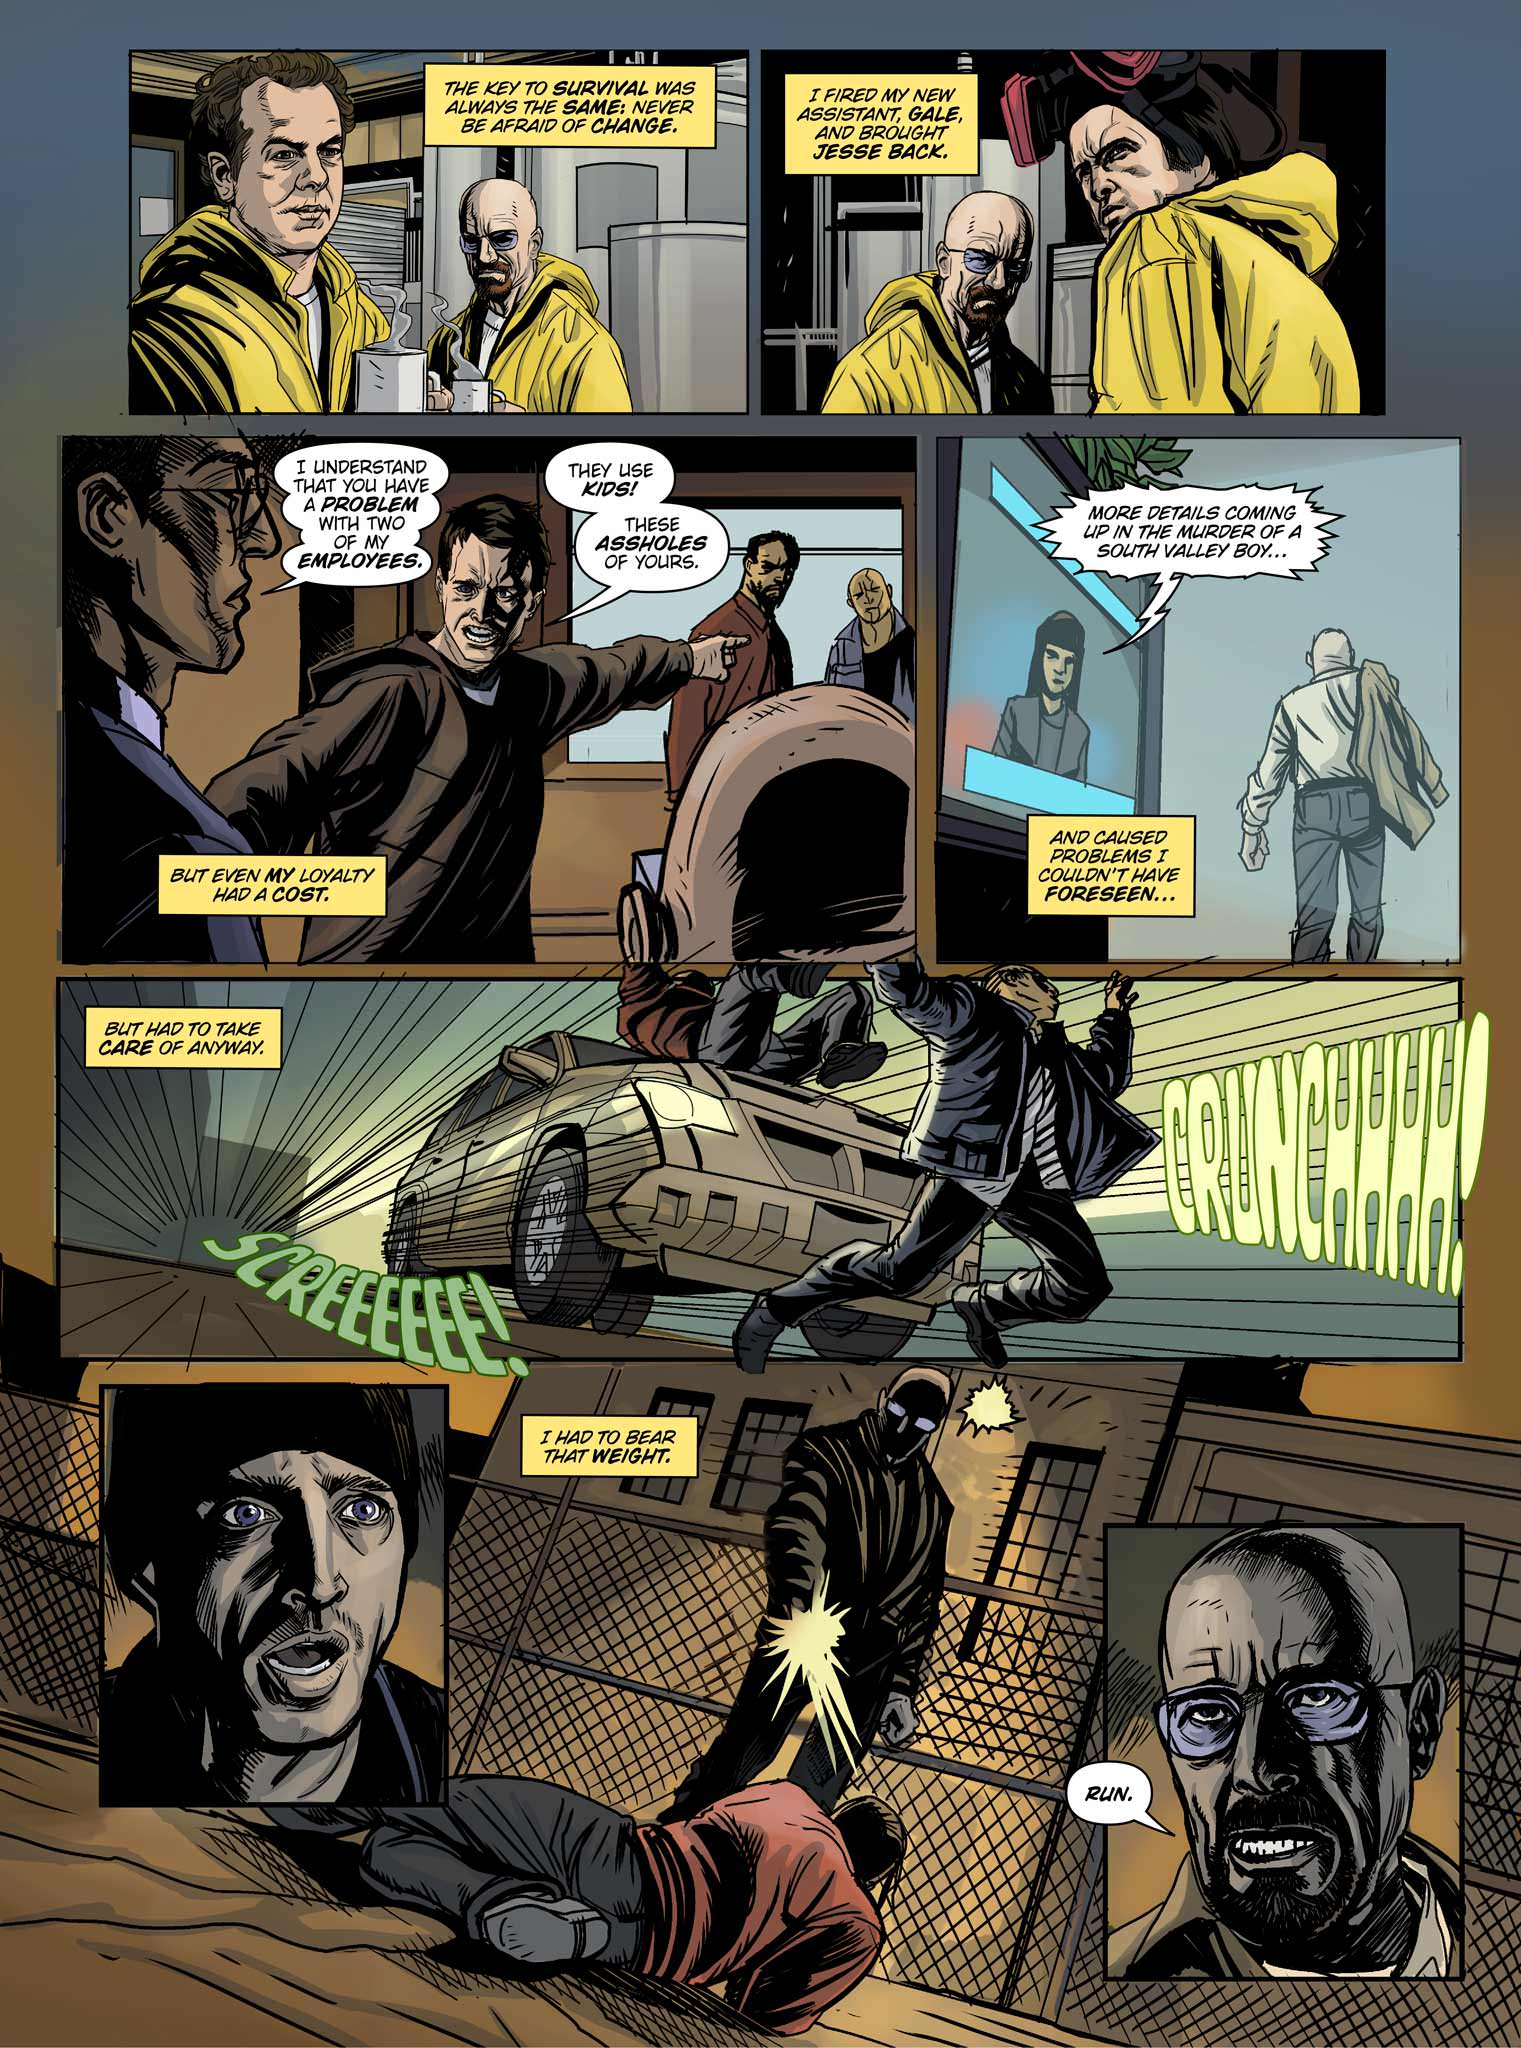 Read online Breaking Bad: All Bad Things comic -  Issue # Full - 12